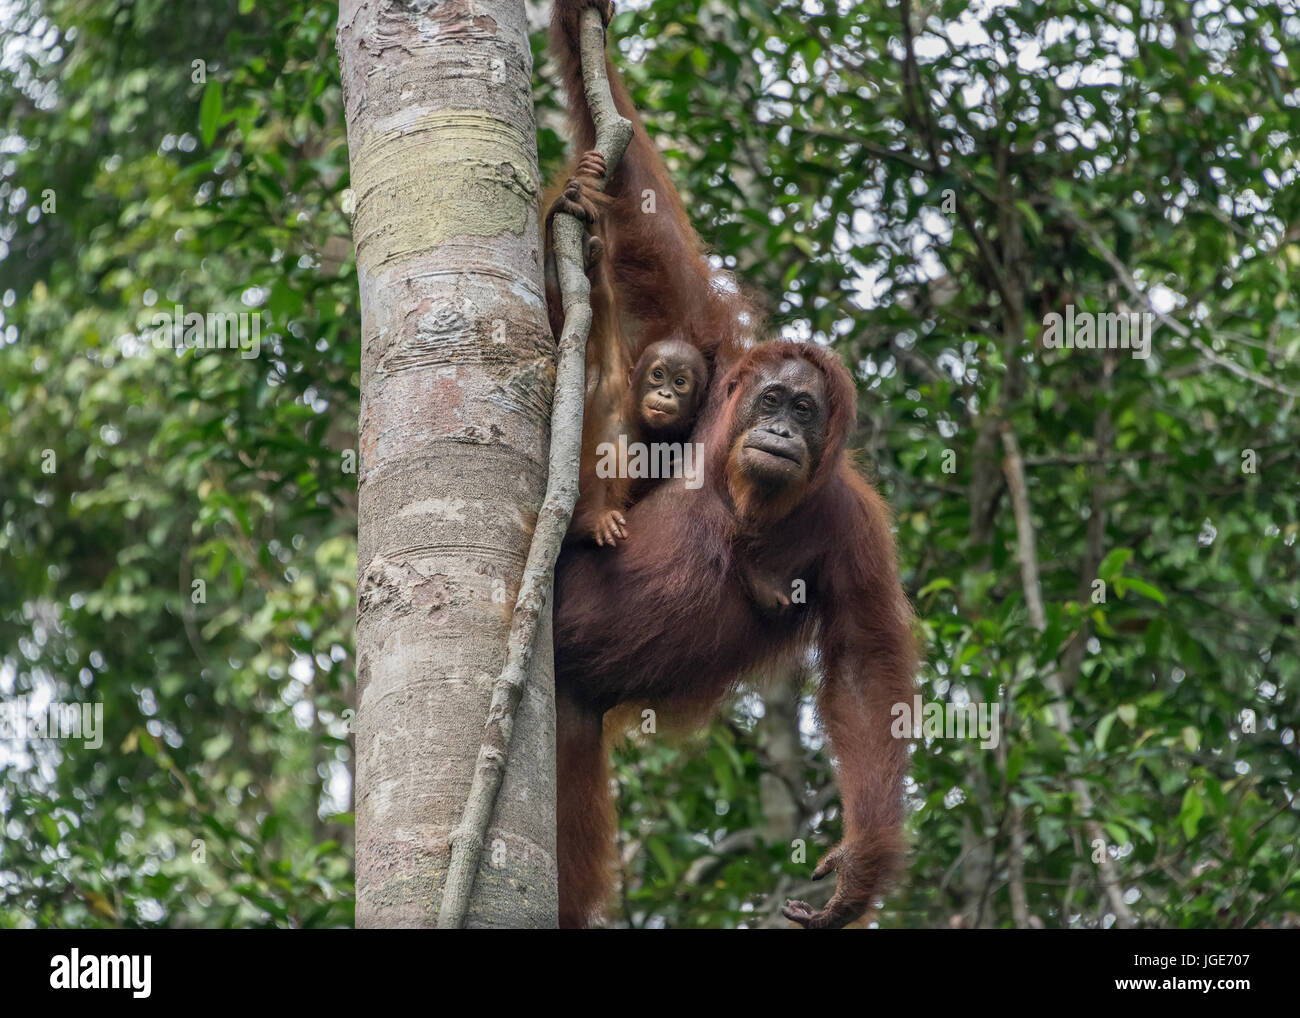 Mother orangutan and look-alike baby high in a tree, Tanjung Puting National Park, Kalimantan, Indonesia - Stock Image